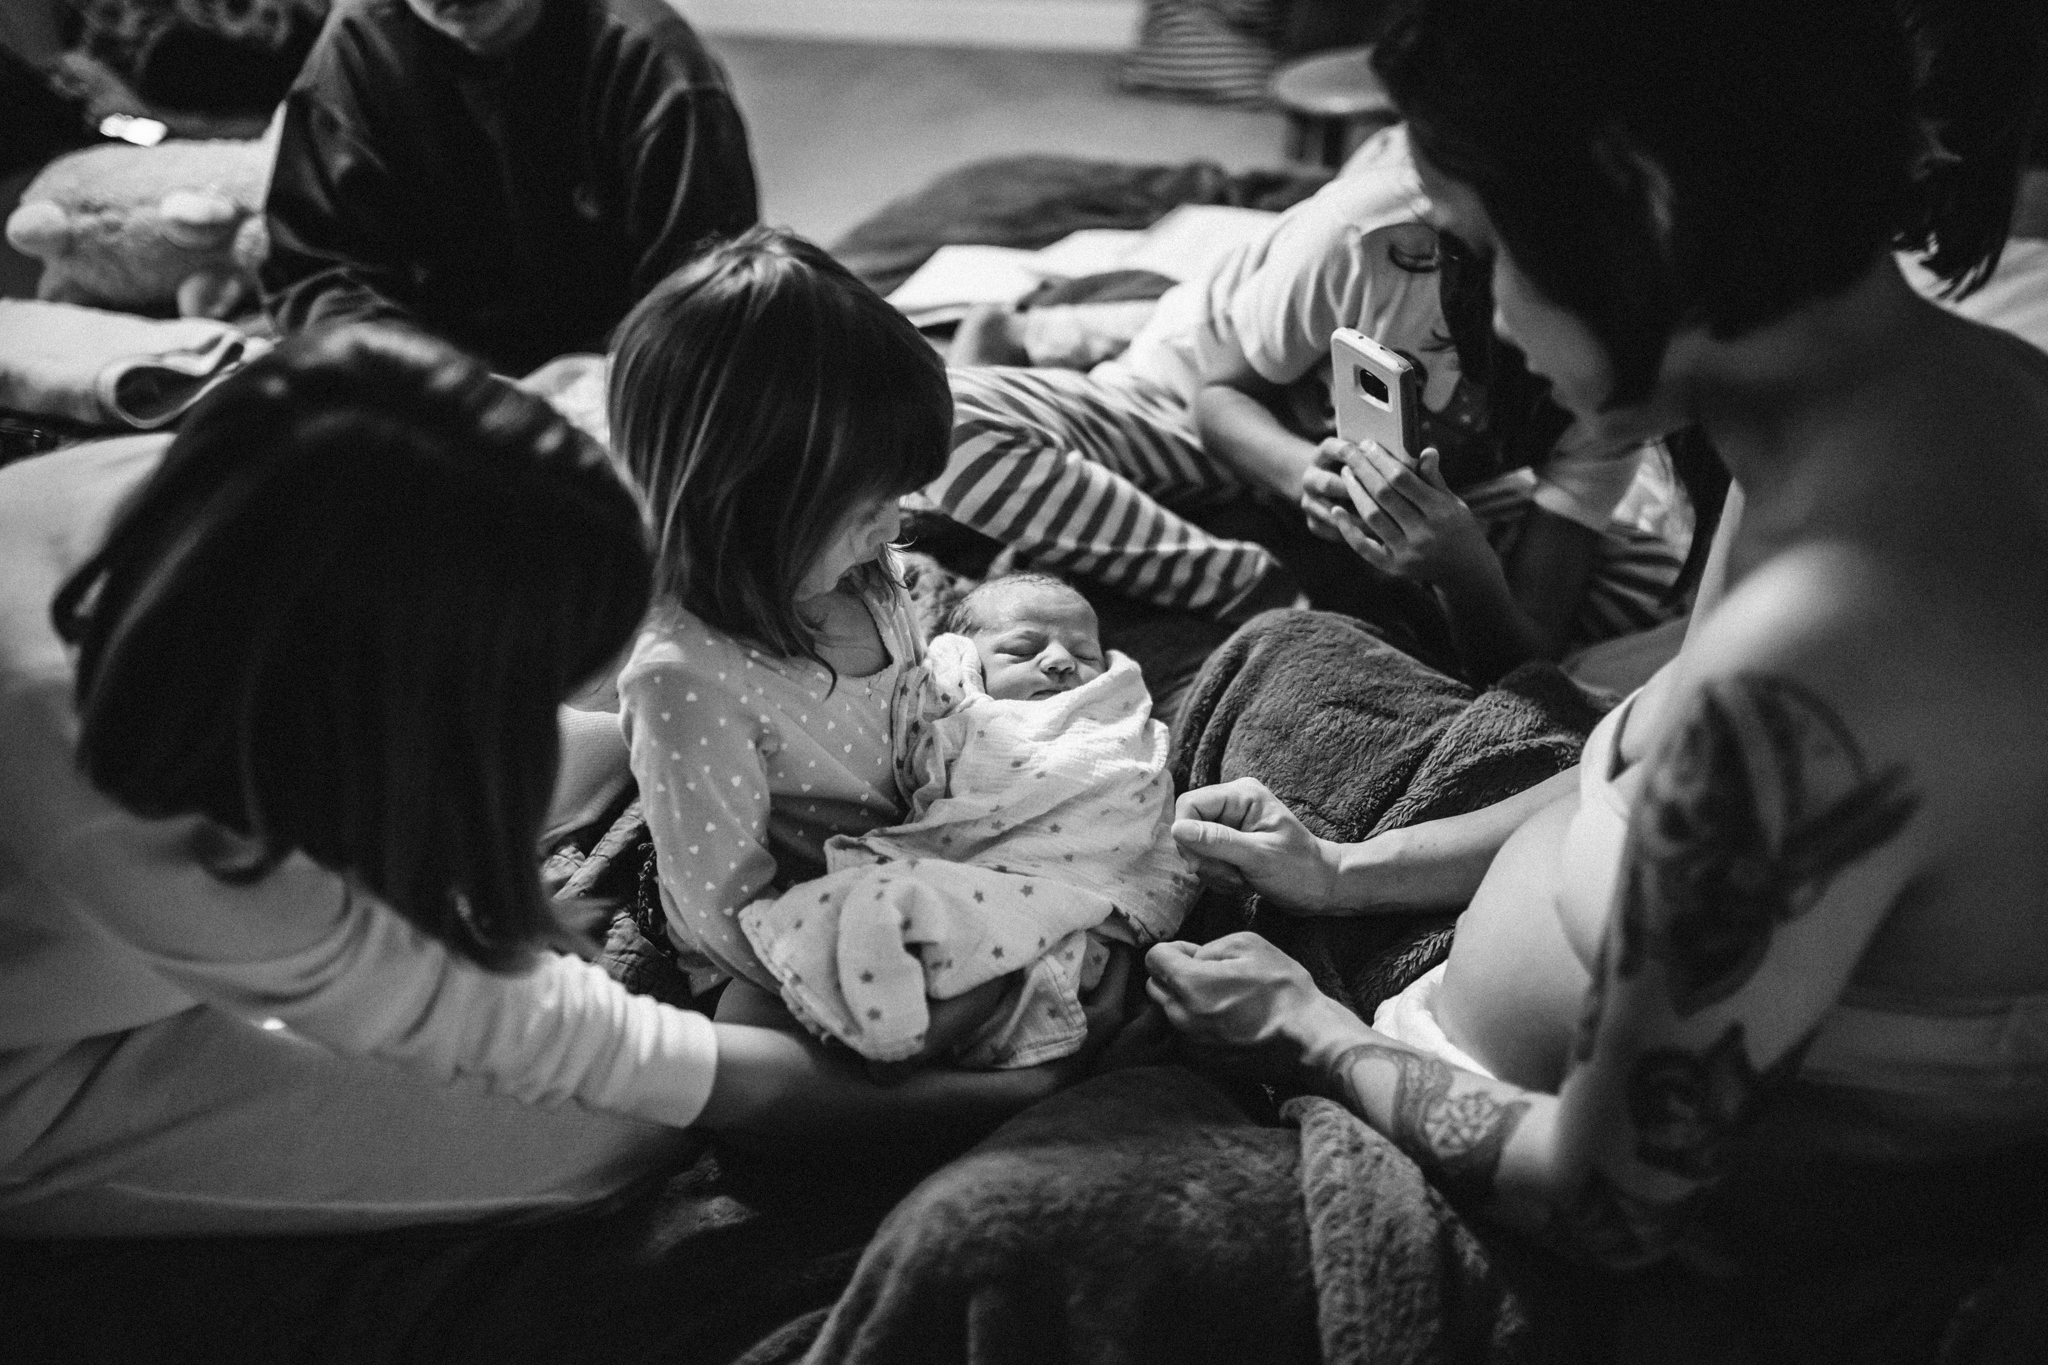 Casey_Teller_Birth_photography_suffolk_virginia_rebecca_burt_photography-73.JPG